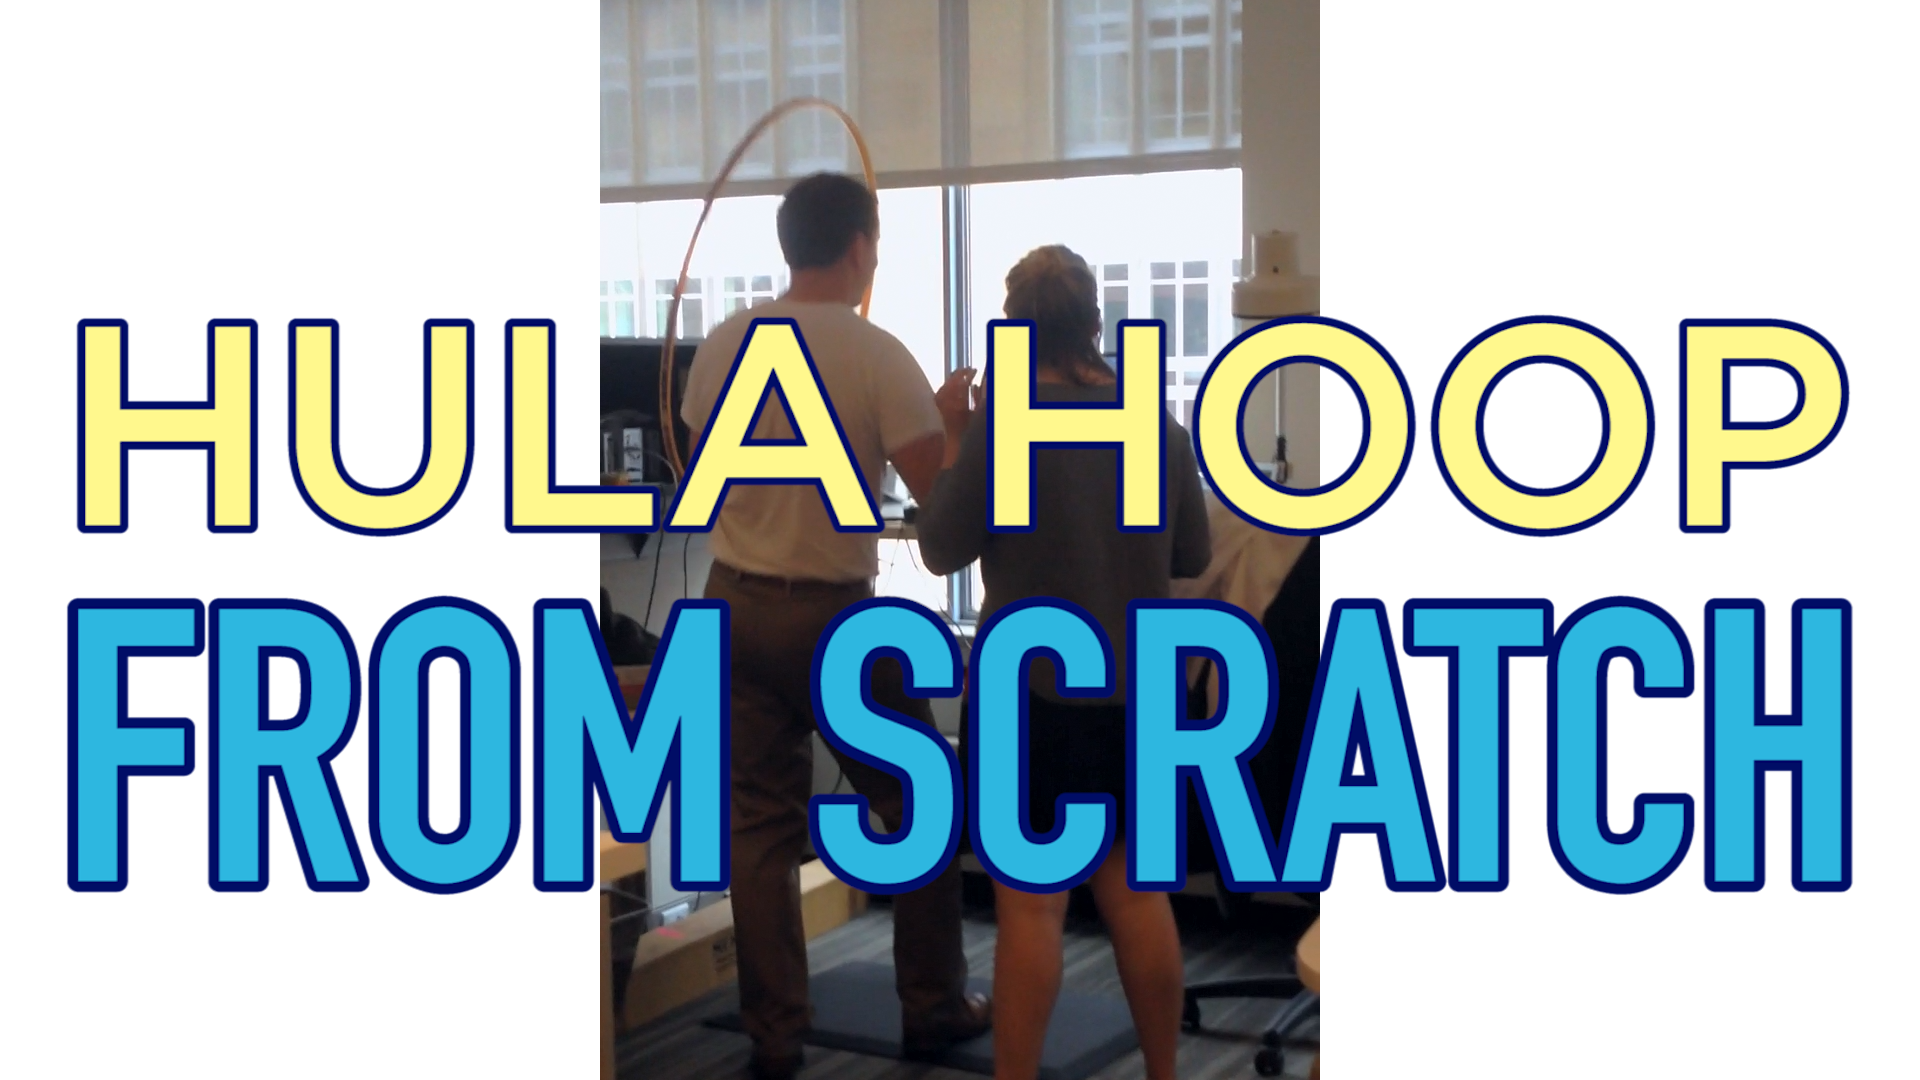 The Wrap | Hula Hoop from Scratch